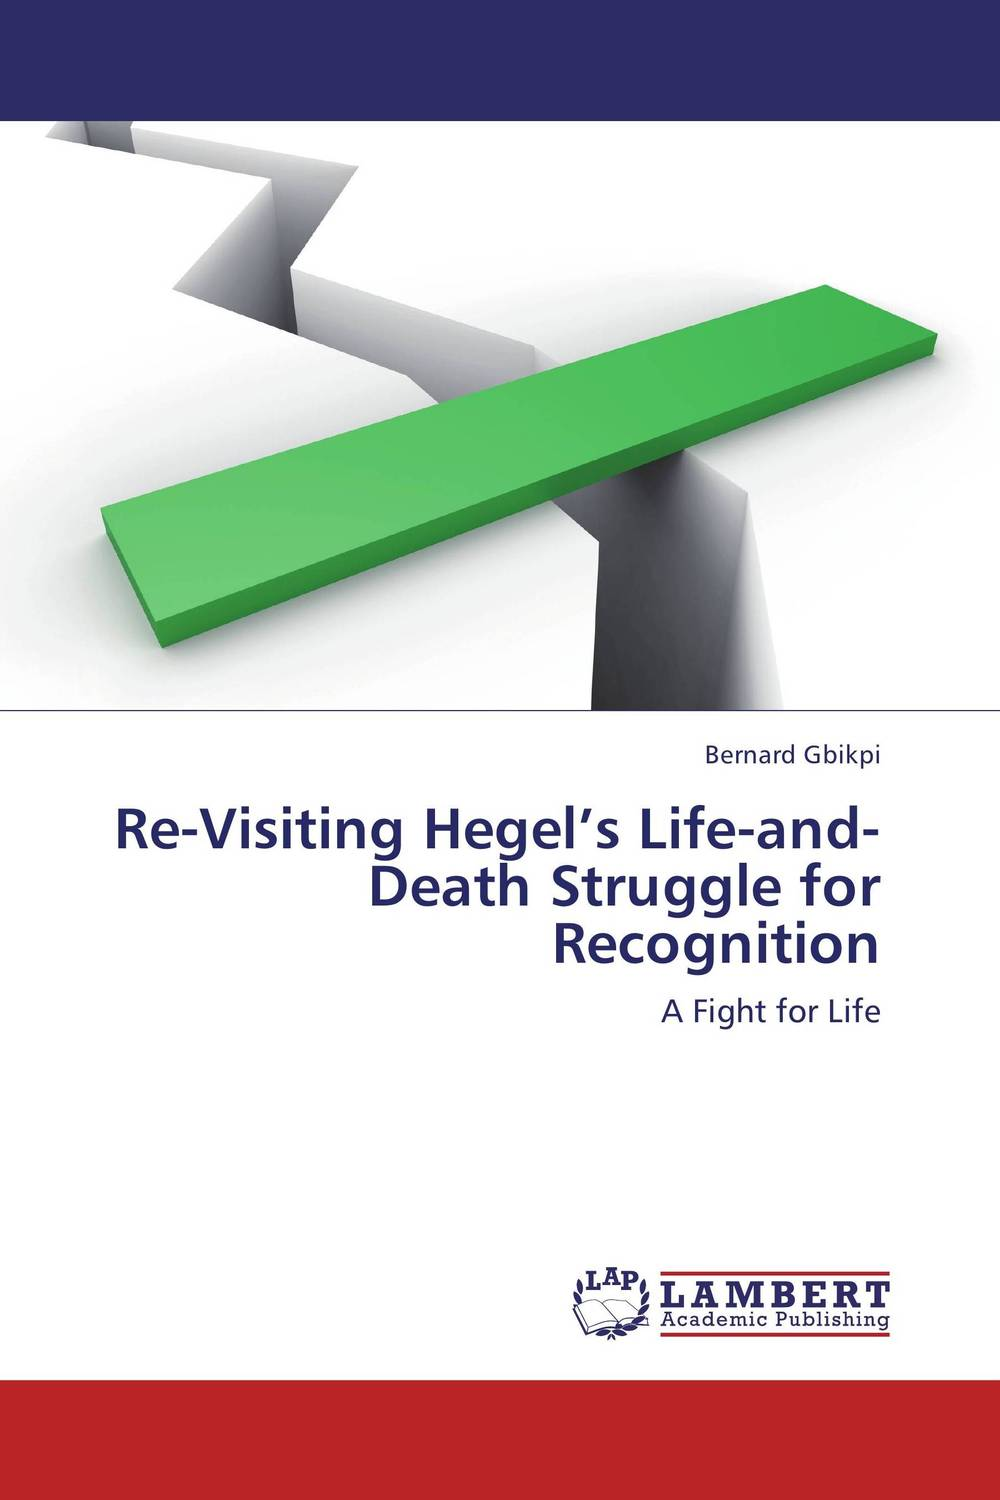 Re-Visiting Hegel's Life-and-Death Struggle for Recognition